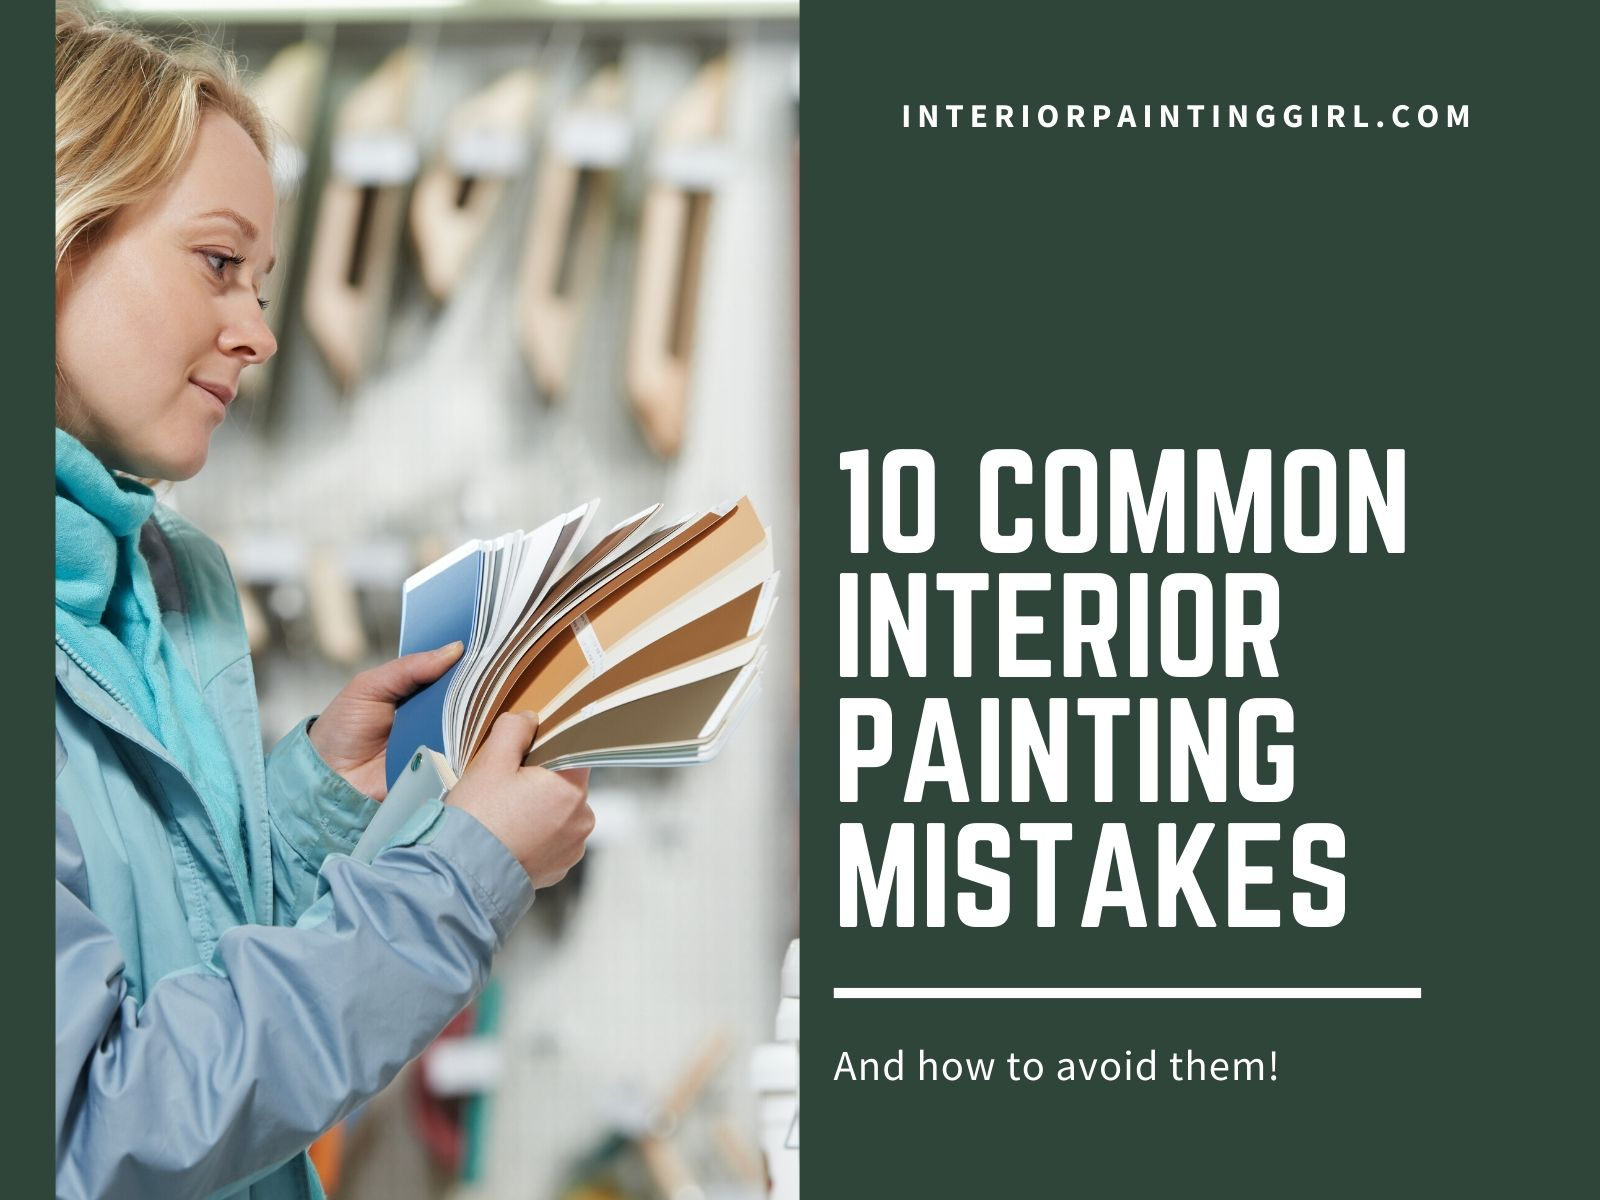 Ten Common Interior Painting Mistakes (And How To Avoid Them) - THAT Interior Painting Girl